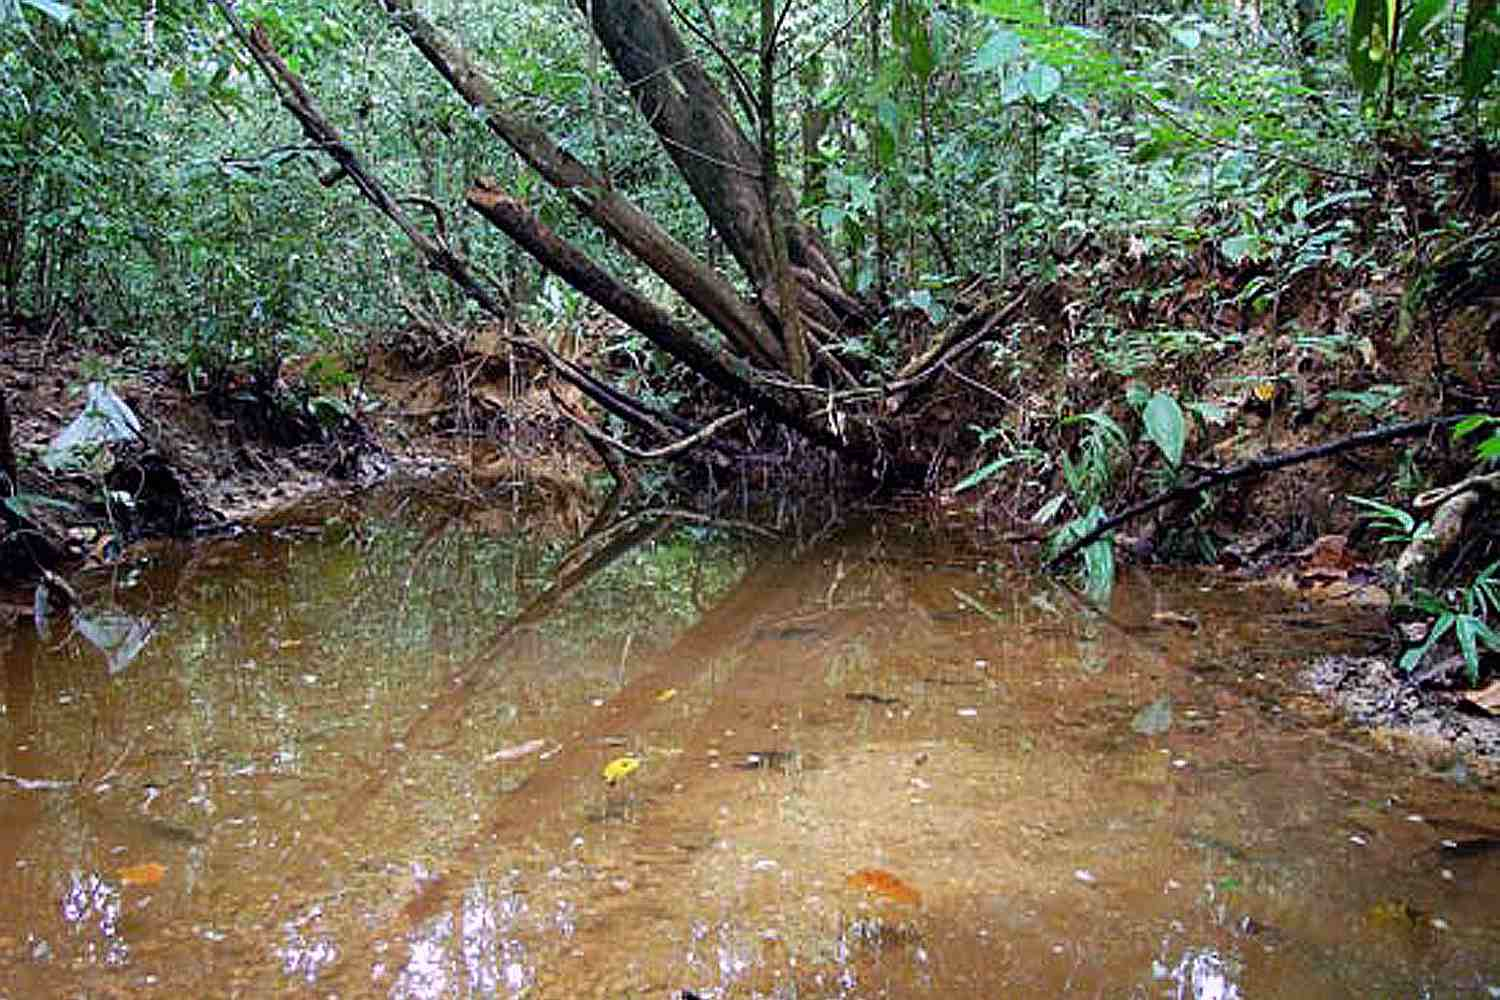 Swampy area with trees and water where killifish live.